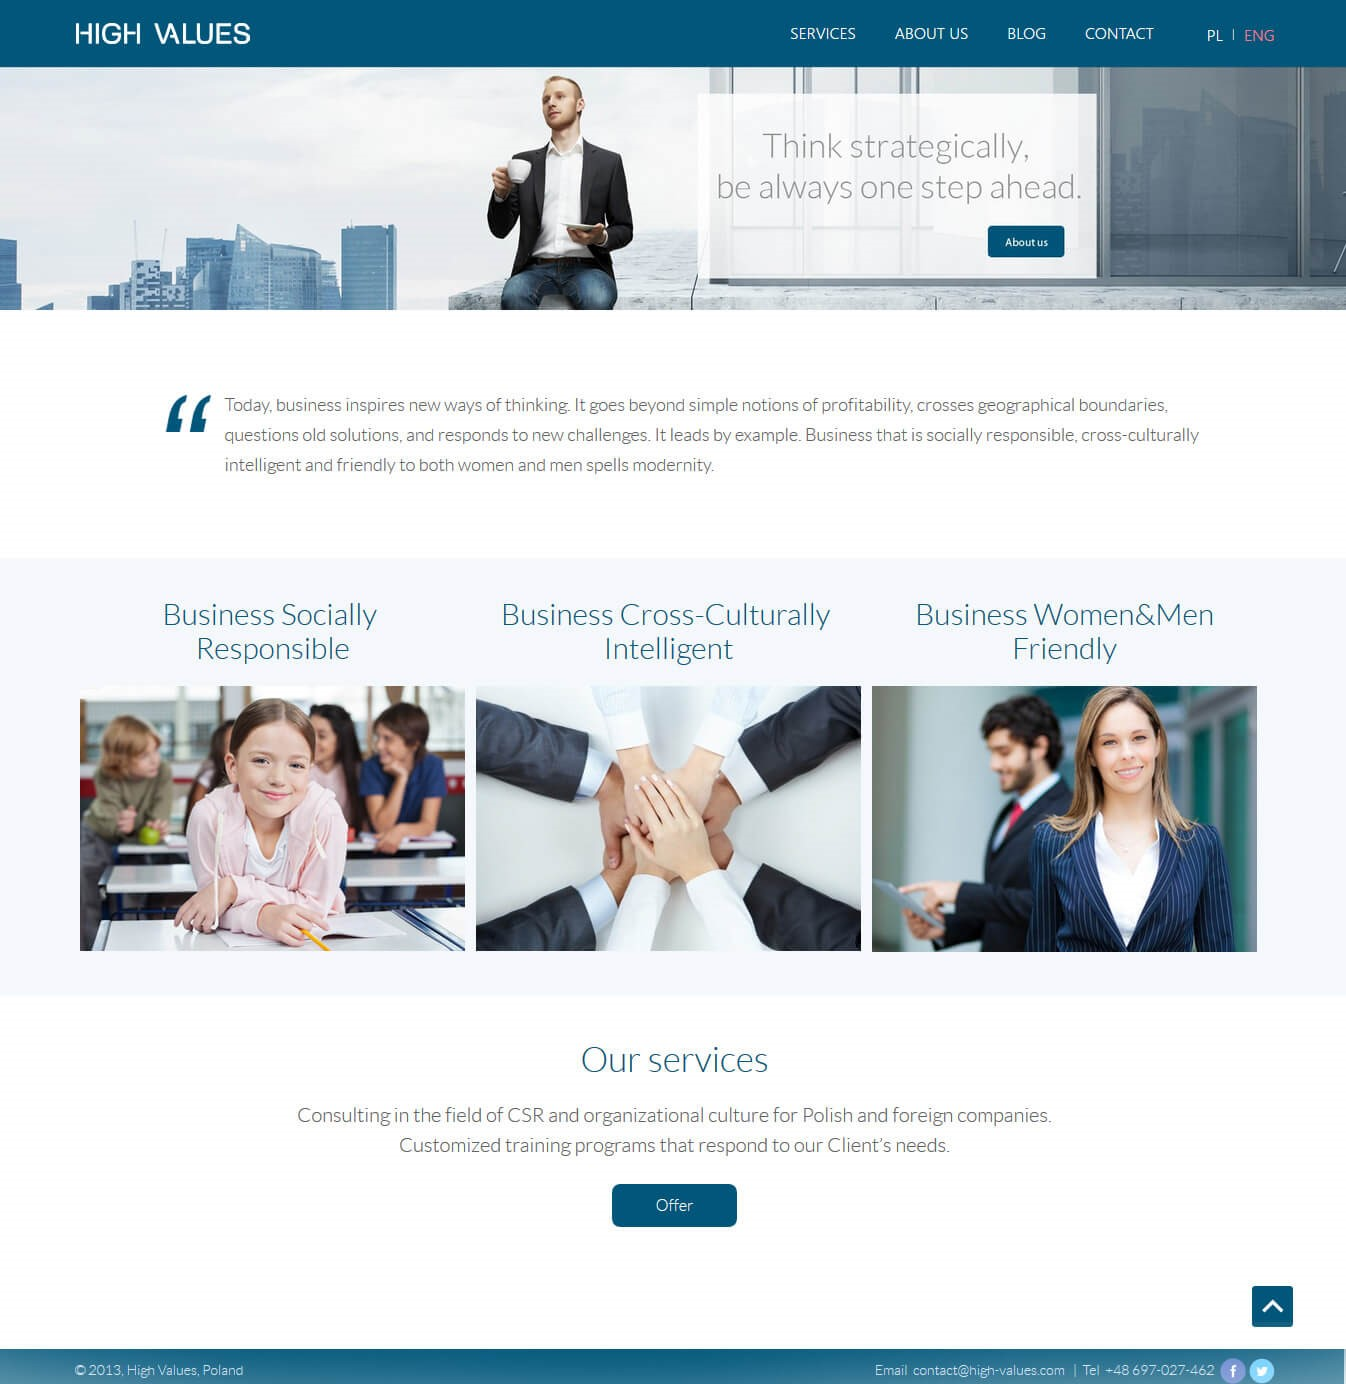 Strona CMS Joomla<div style='clear:both;width:100%;height:0px;'></div><span class='cat'>Joomla</span>